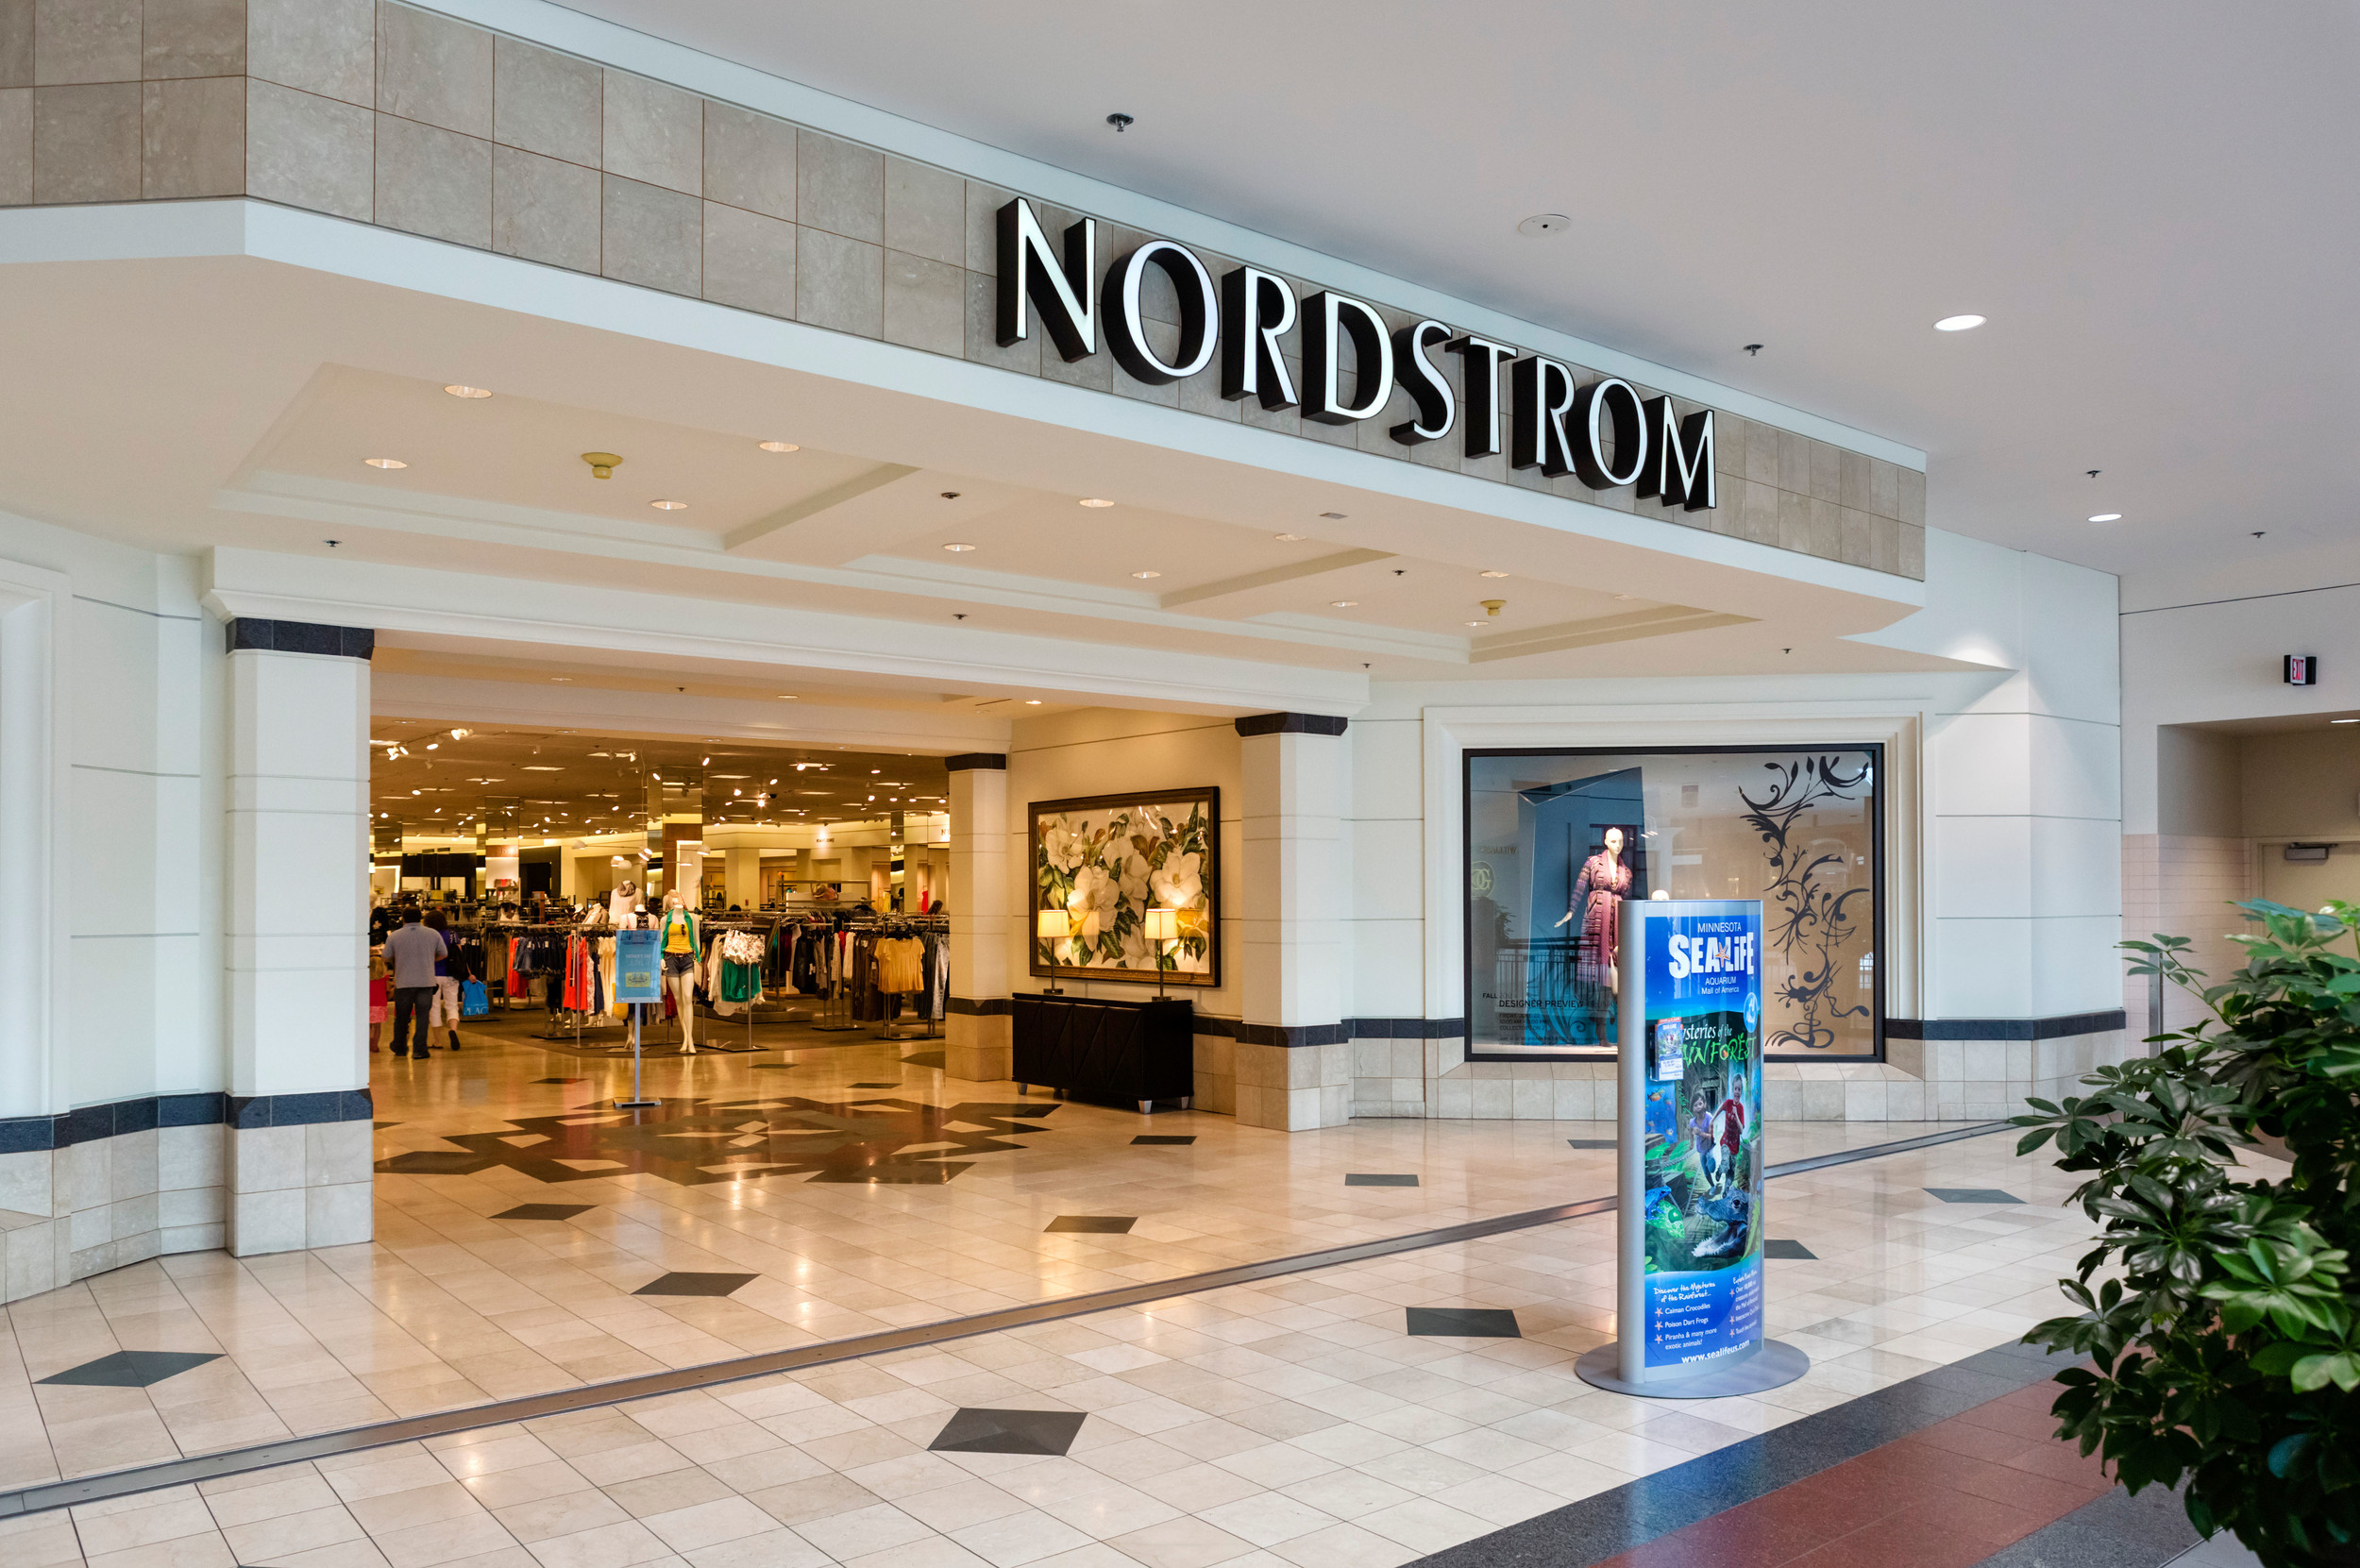 nordstrom-department-store-in-the-mall-of-america-bloomingto-1.jpg